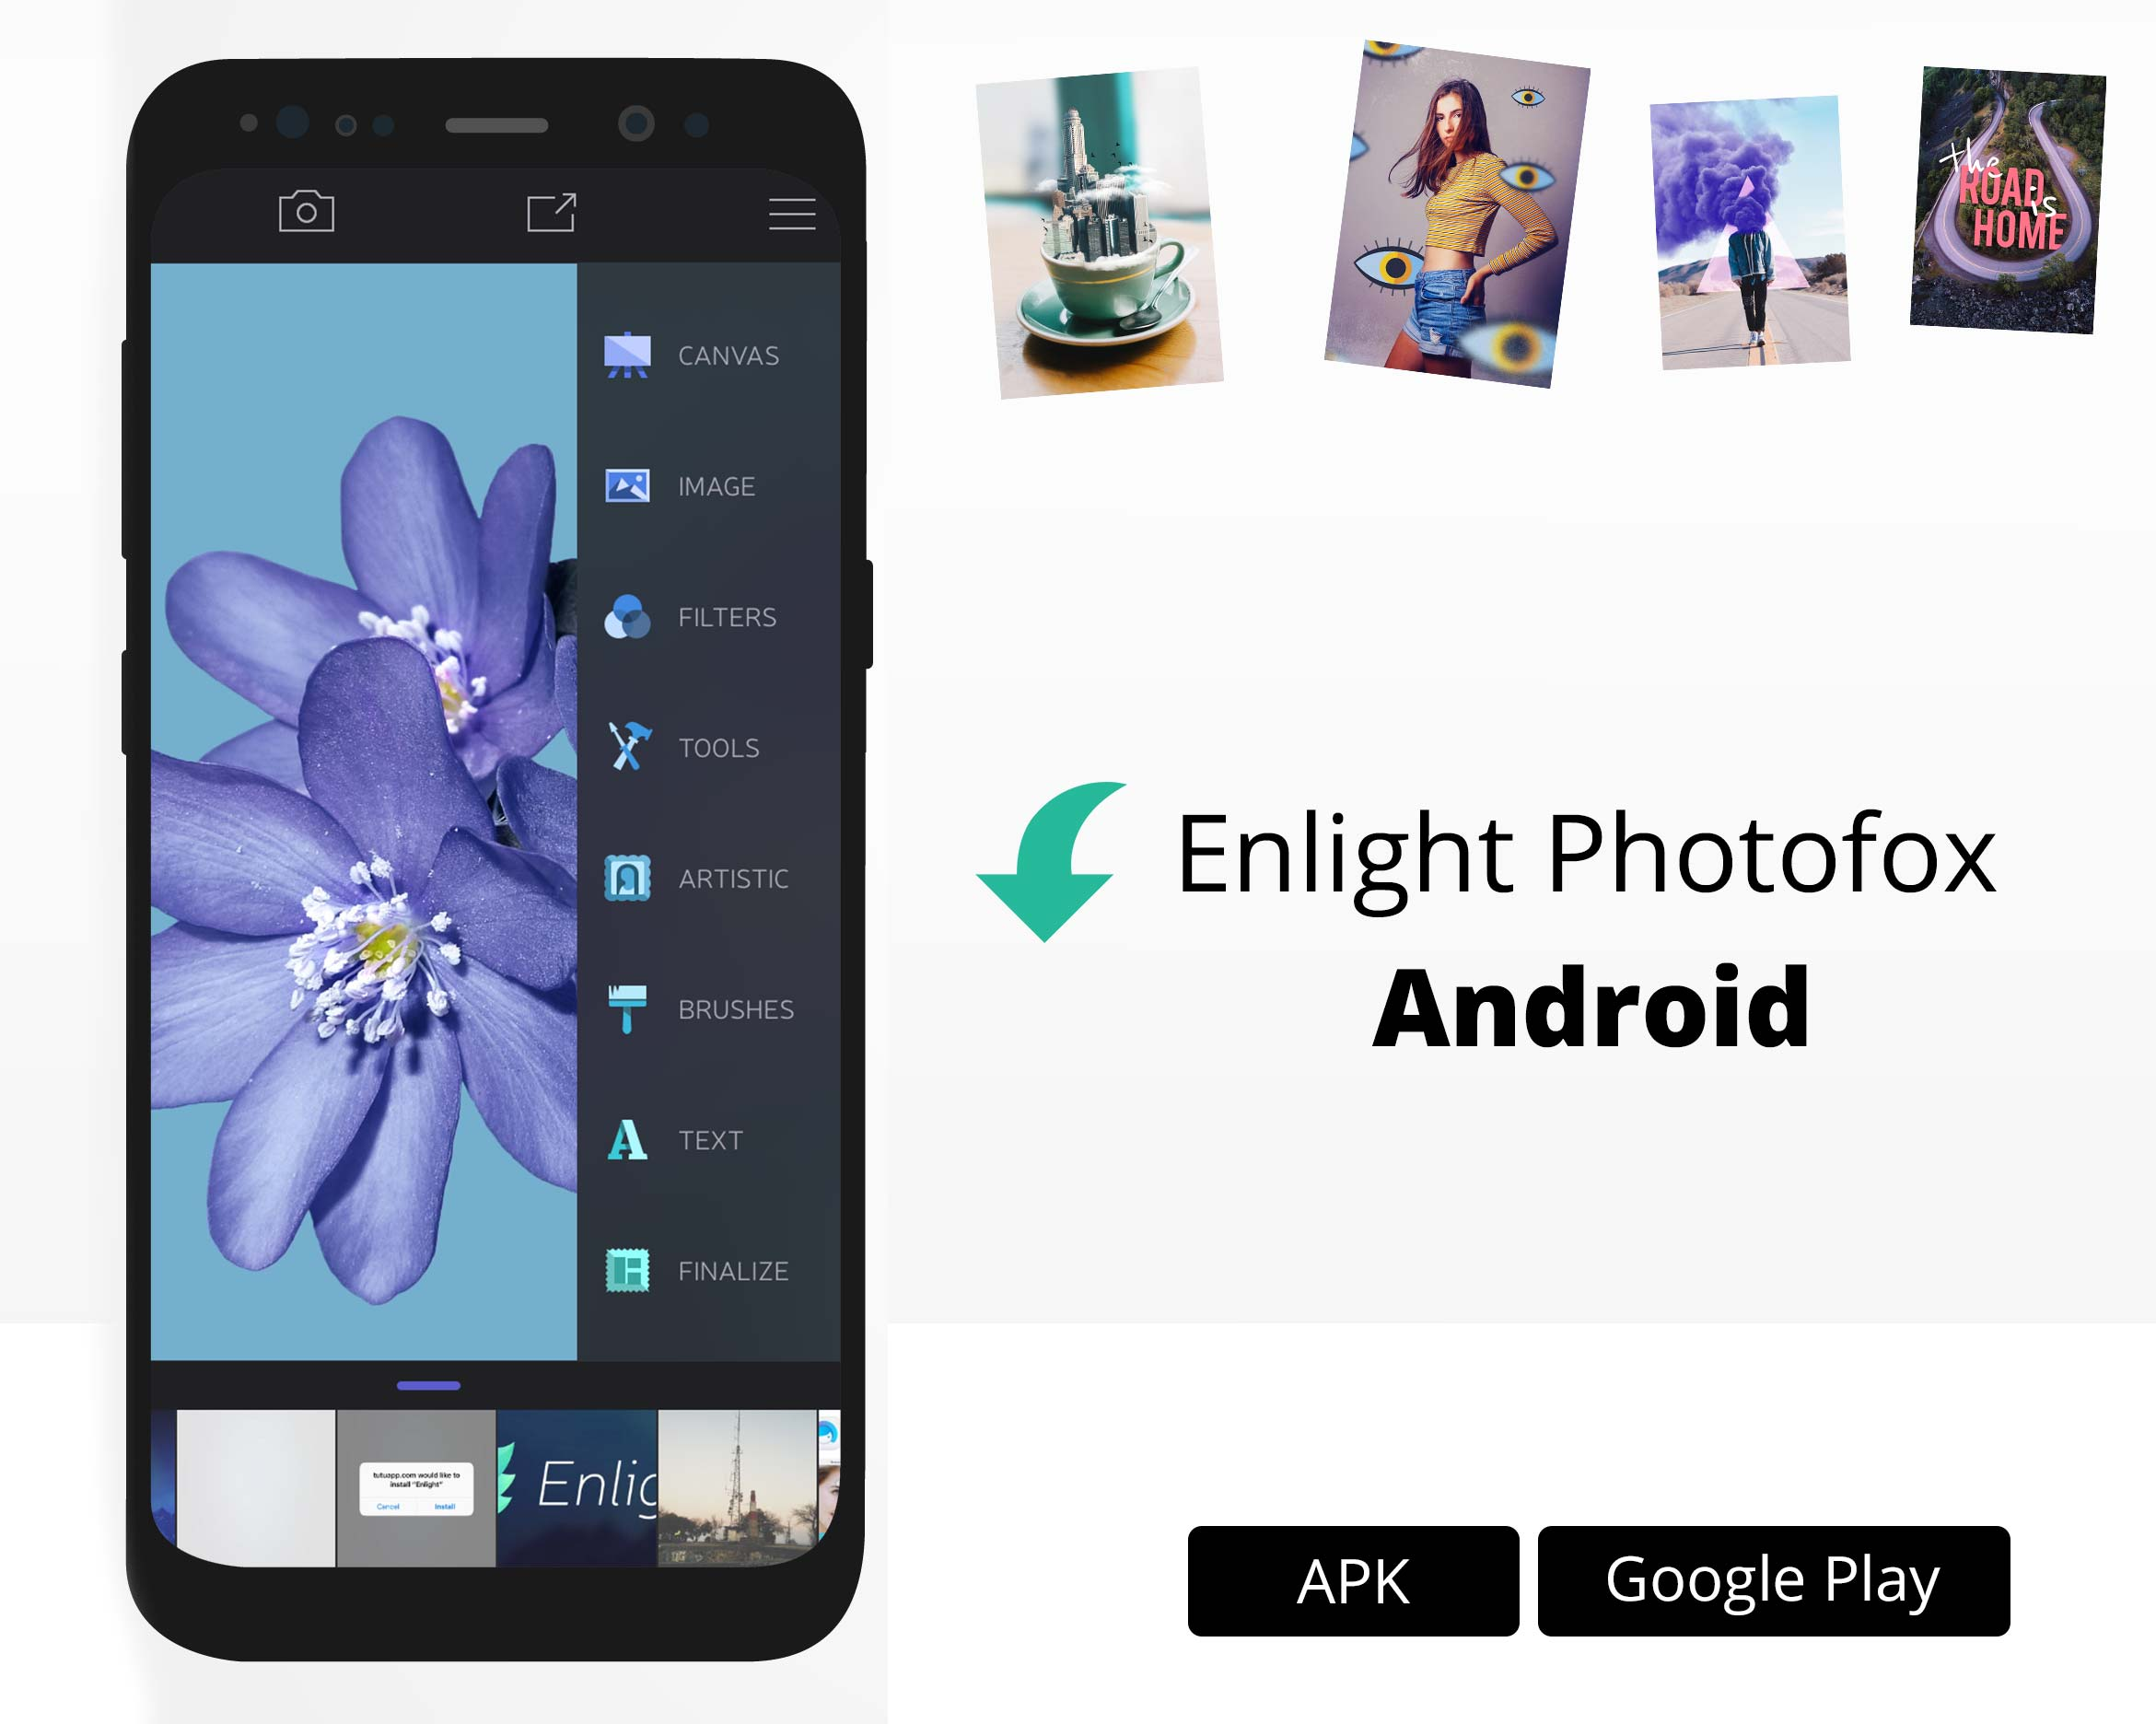 Enlight Photofox APK for Android